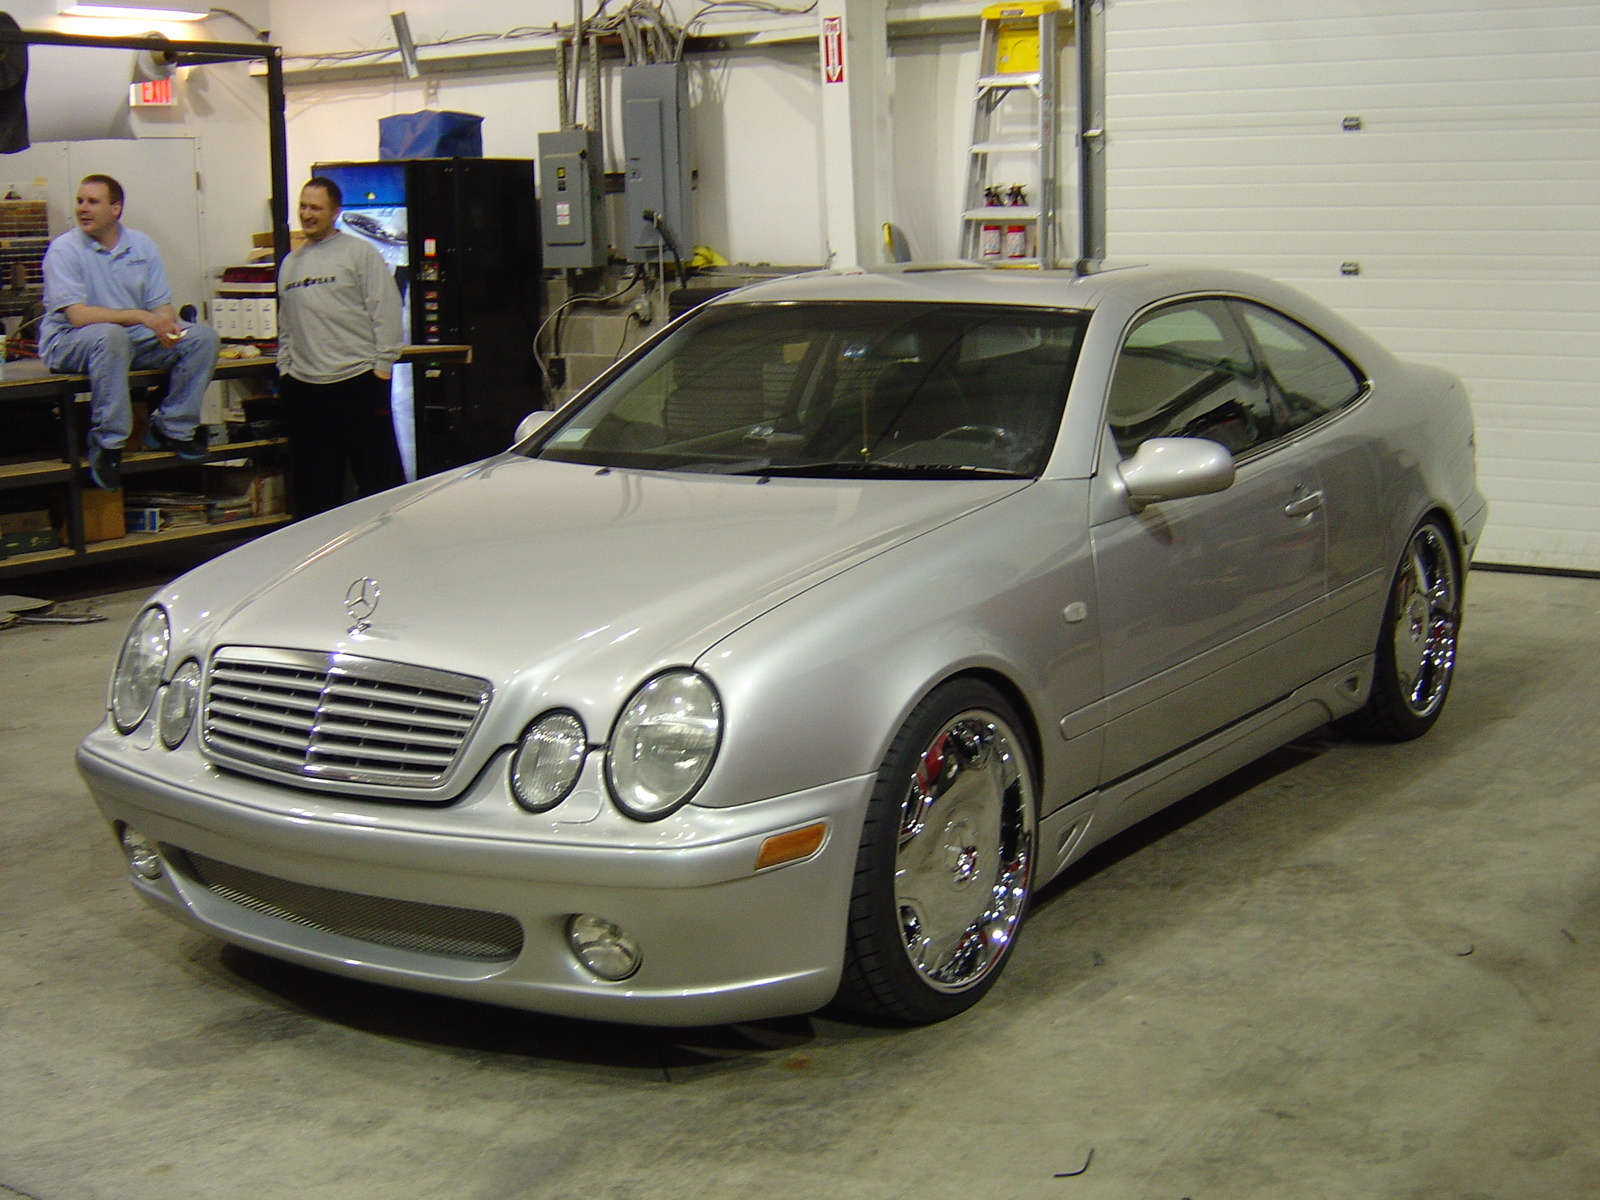 1999 mercedes benz clk320 review for 1999 mercedes benz clk320 for sale